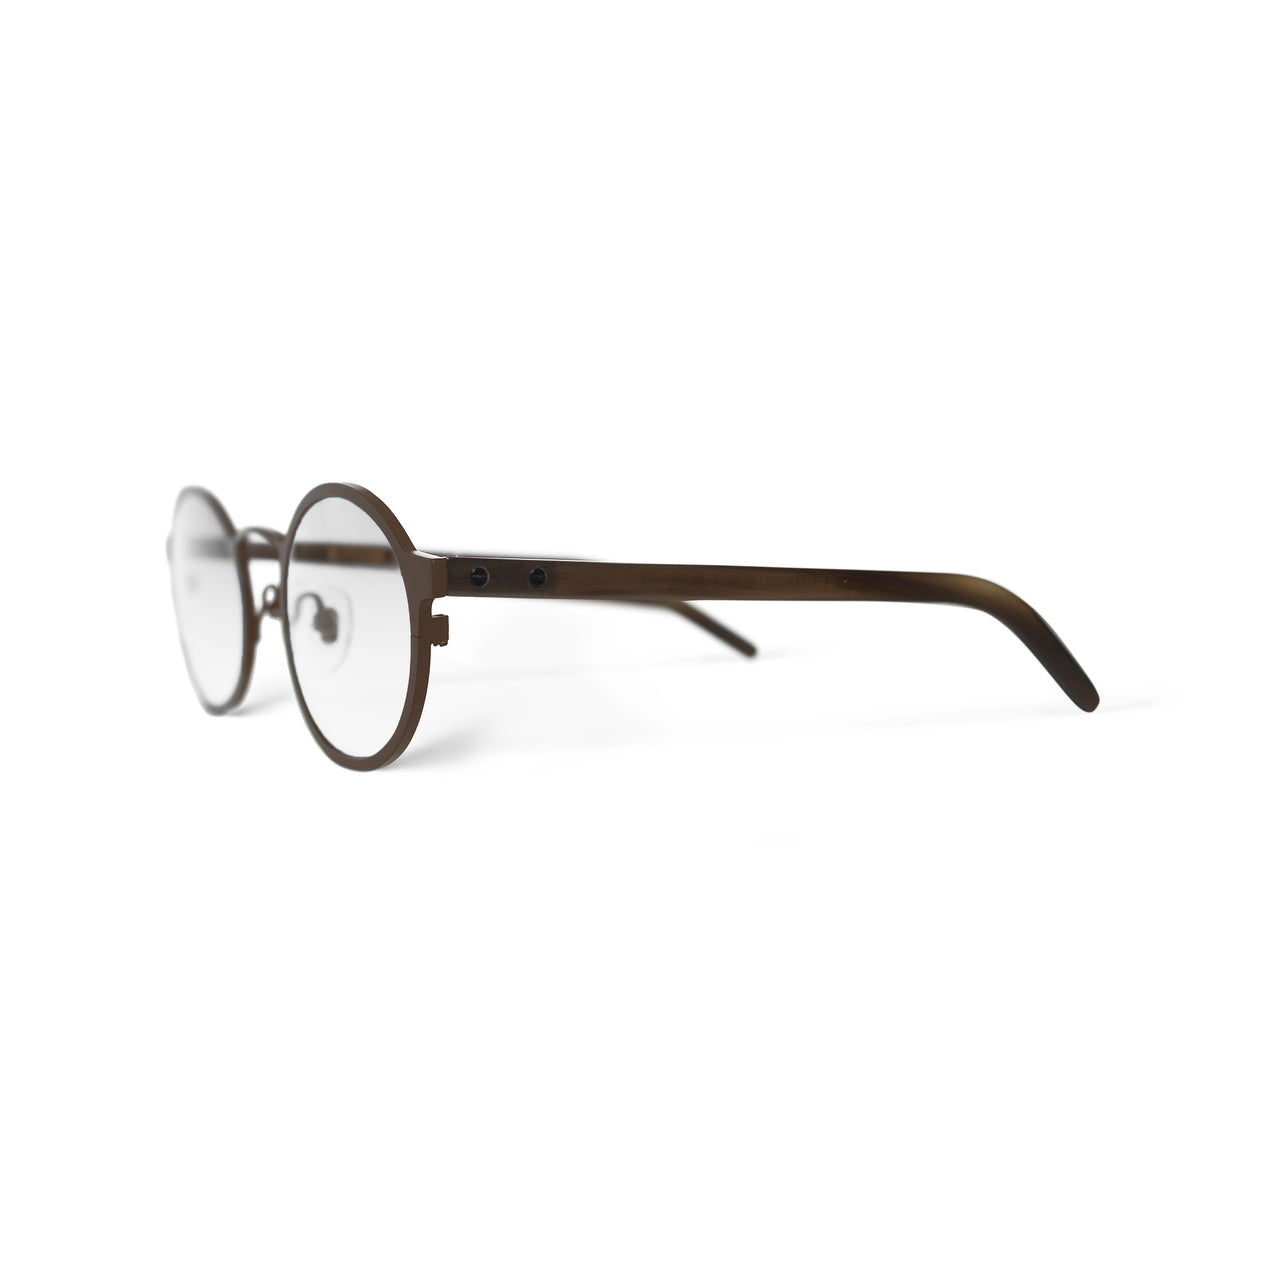 Metal / Horn. Hawthorn / Blonde. Clear Lens. - BLYSZAK eyewear eyewear - eyewear, optical, sunglasses